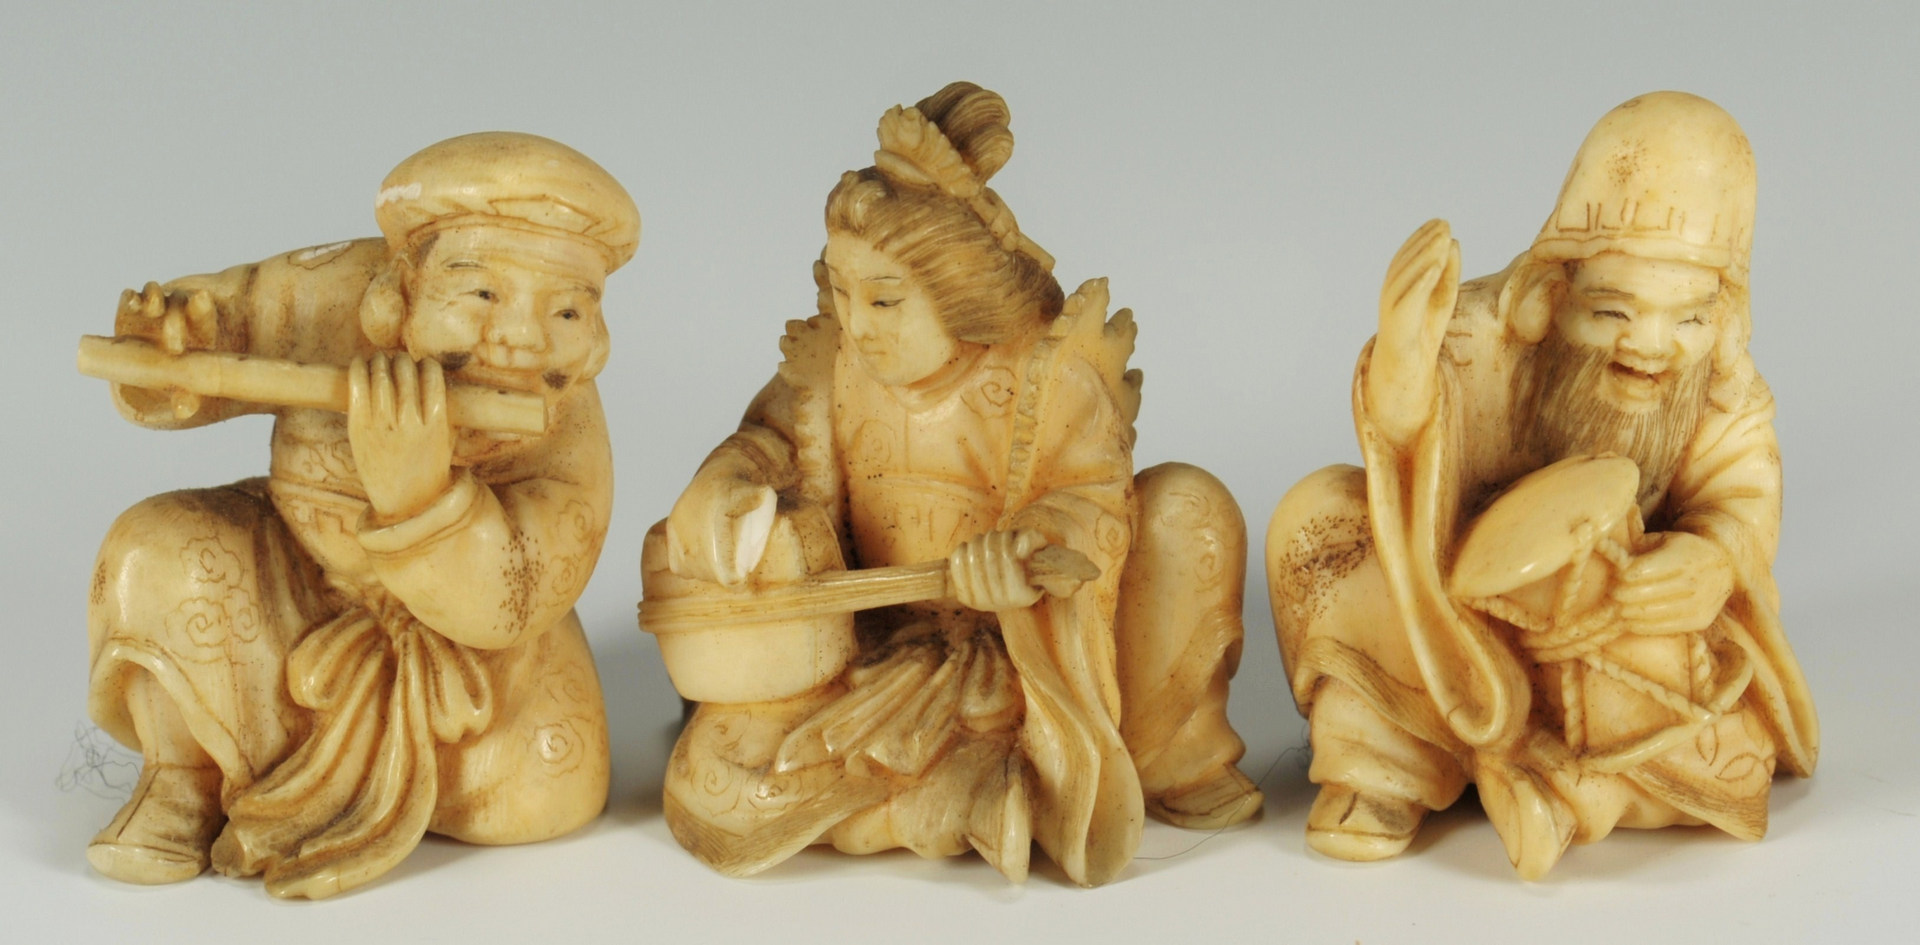 Lot 191: 3 Japanese carved ivory musician figures